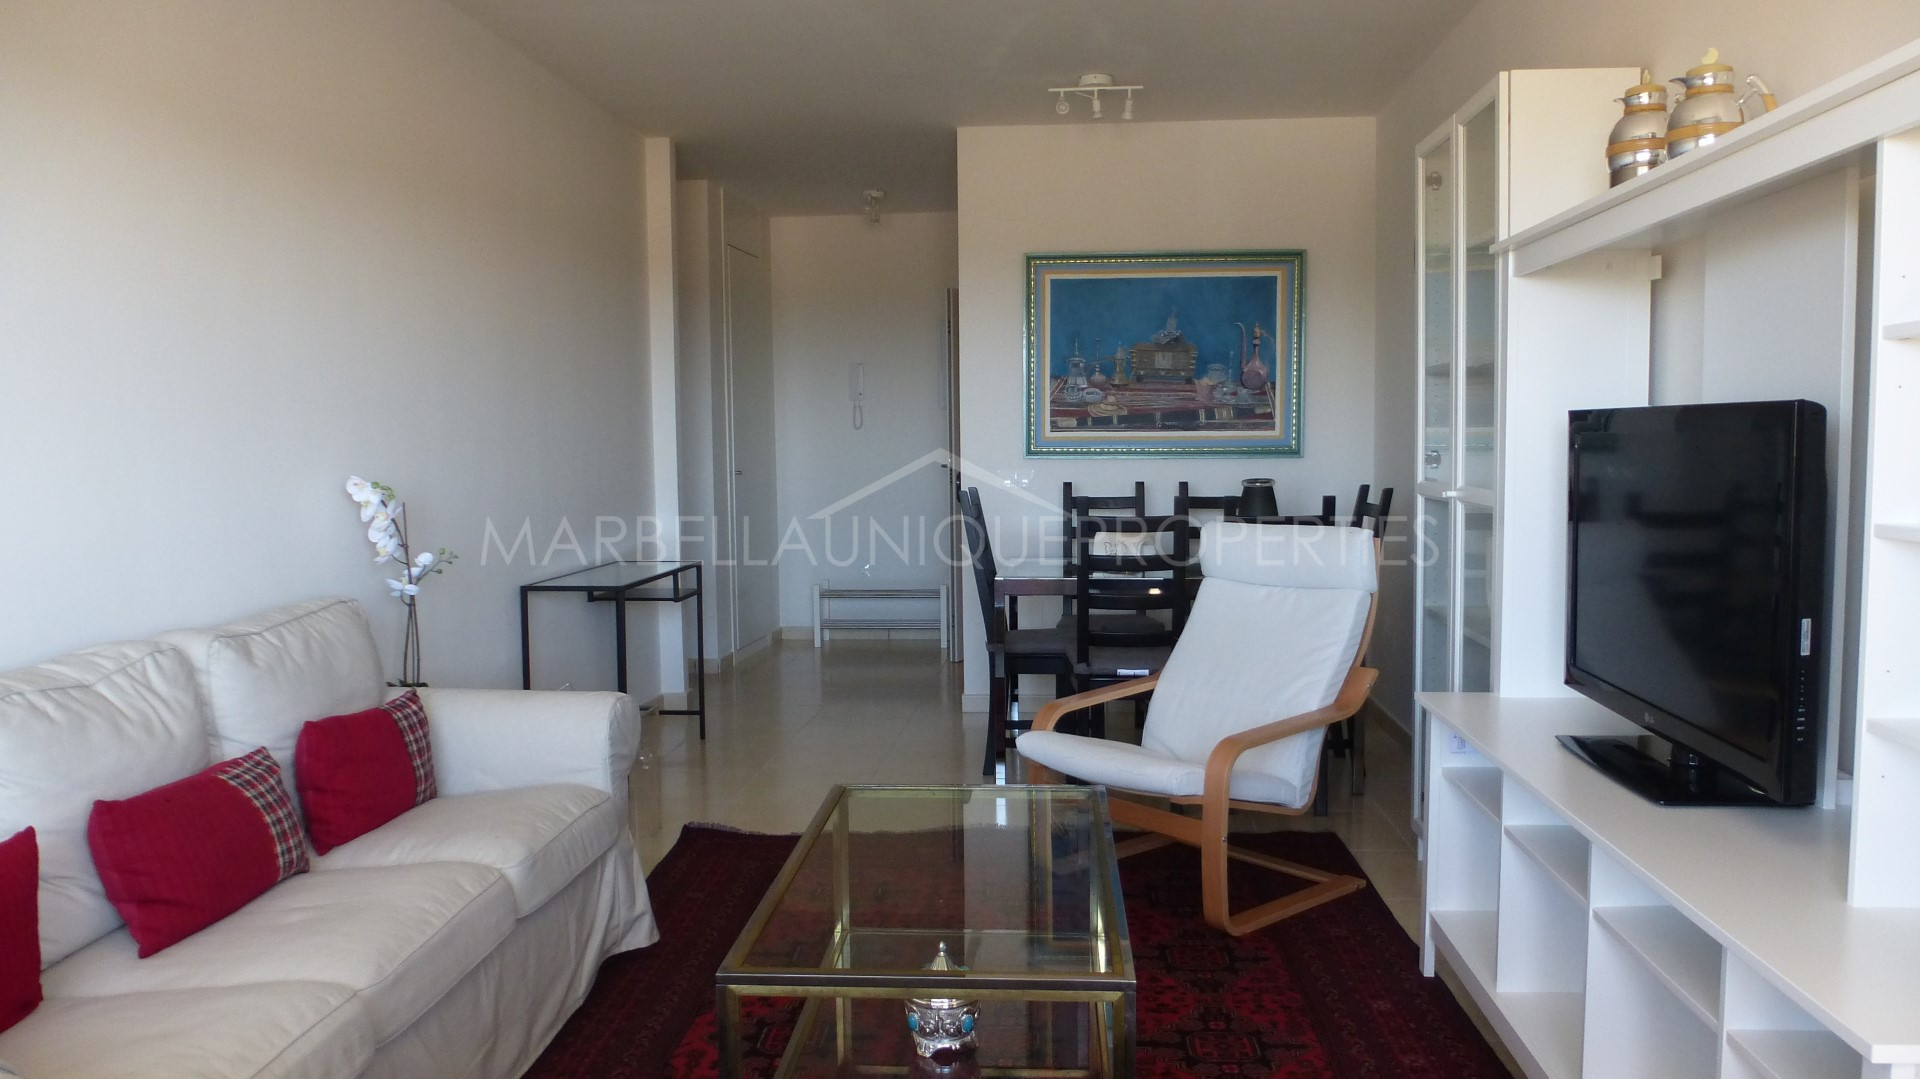 A Lovely 3 Bedroom Apartment In Albatross La Campana Nueva Andalucia